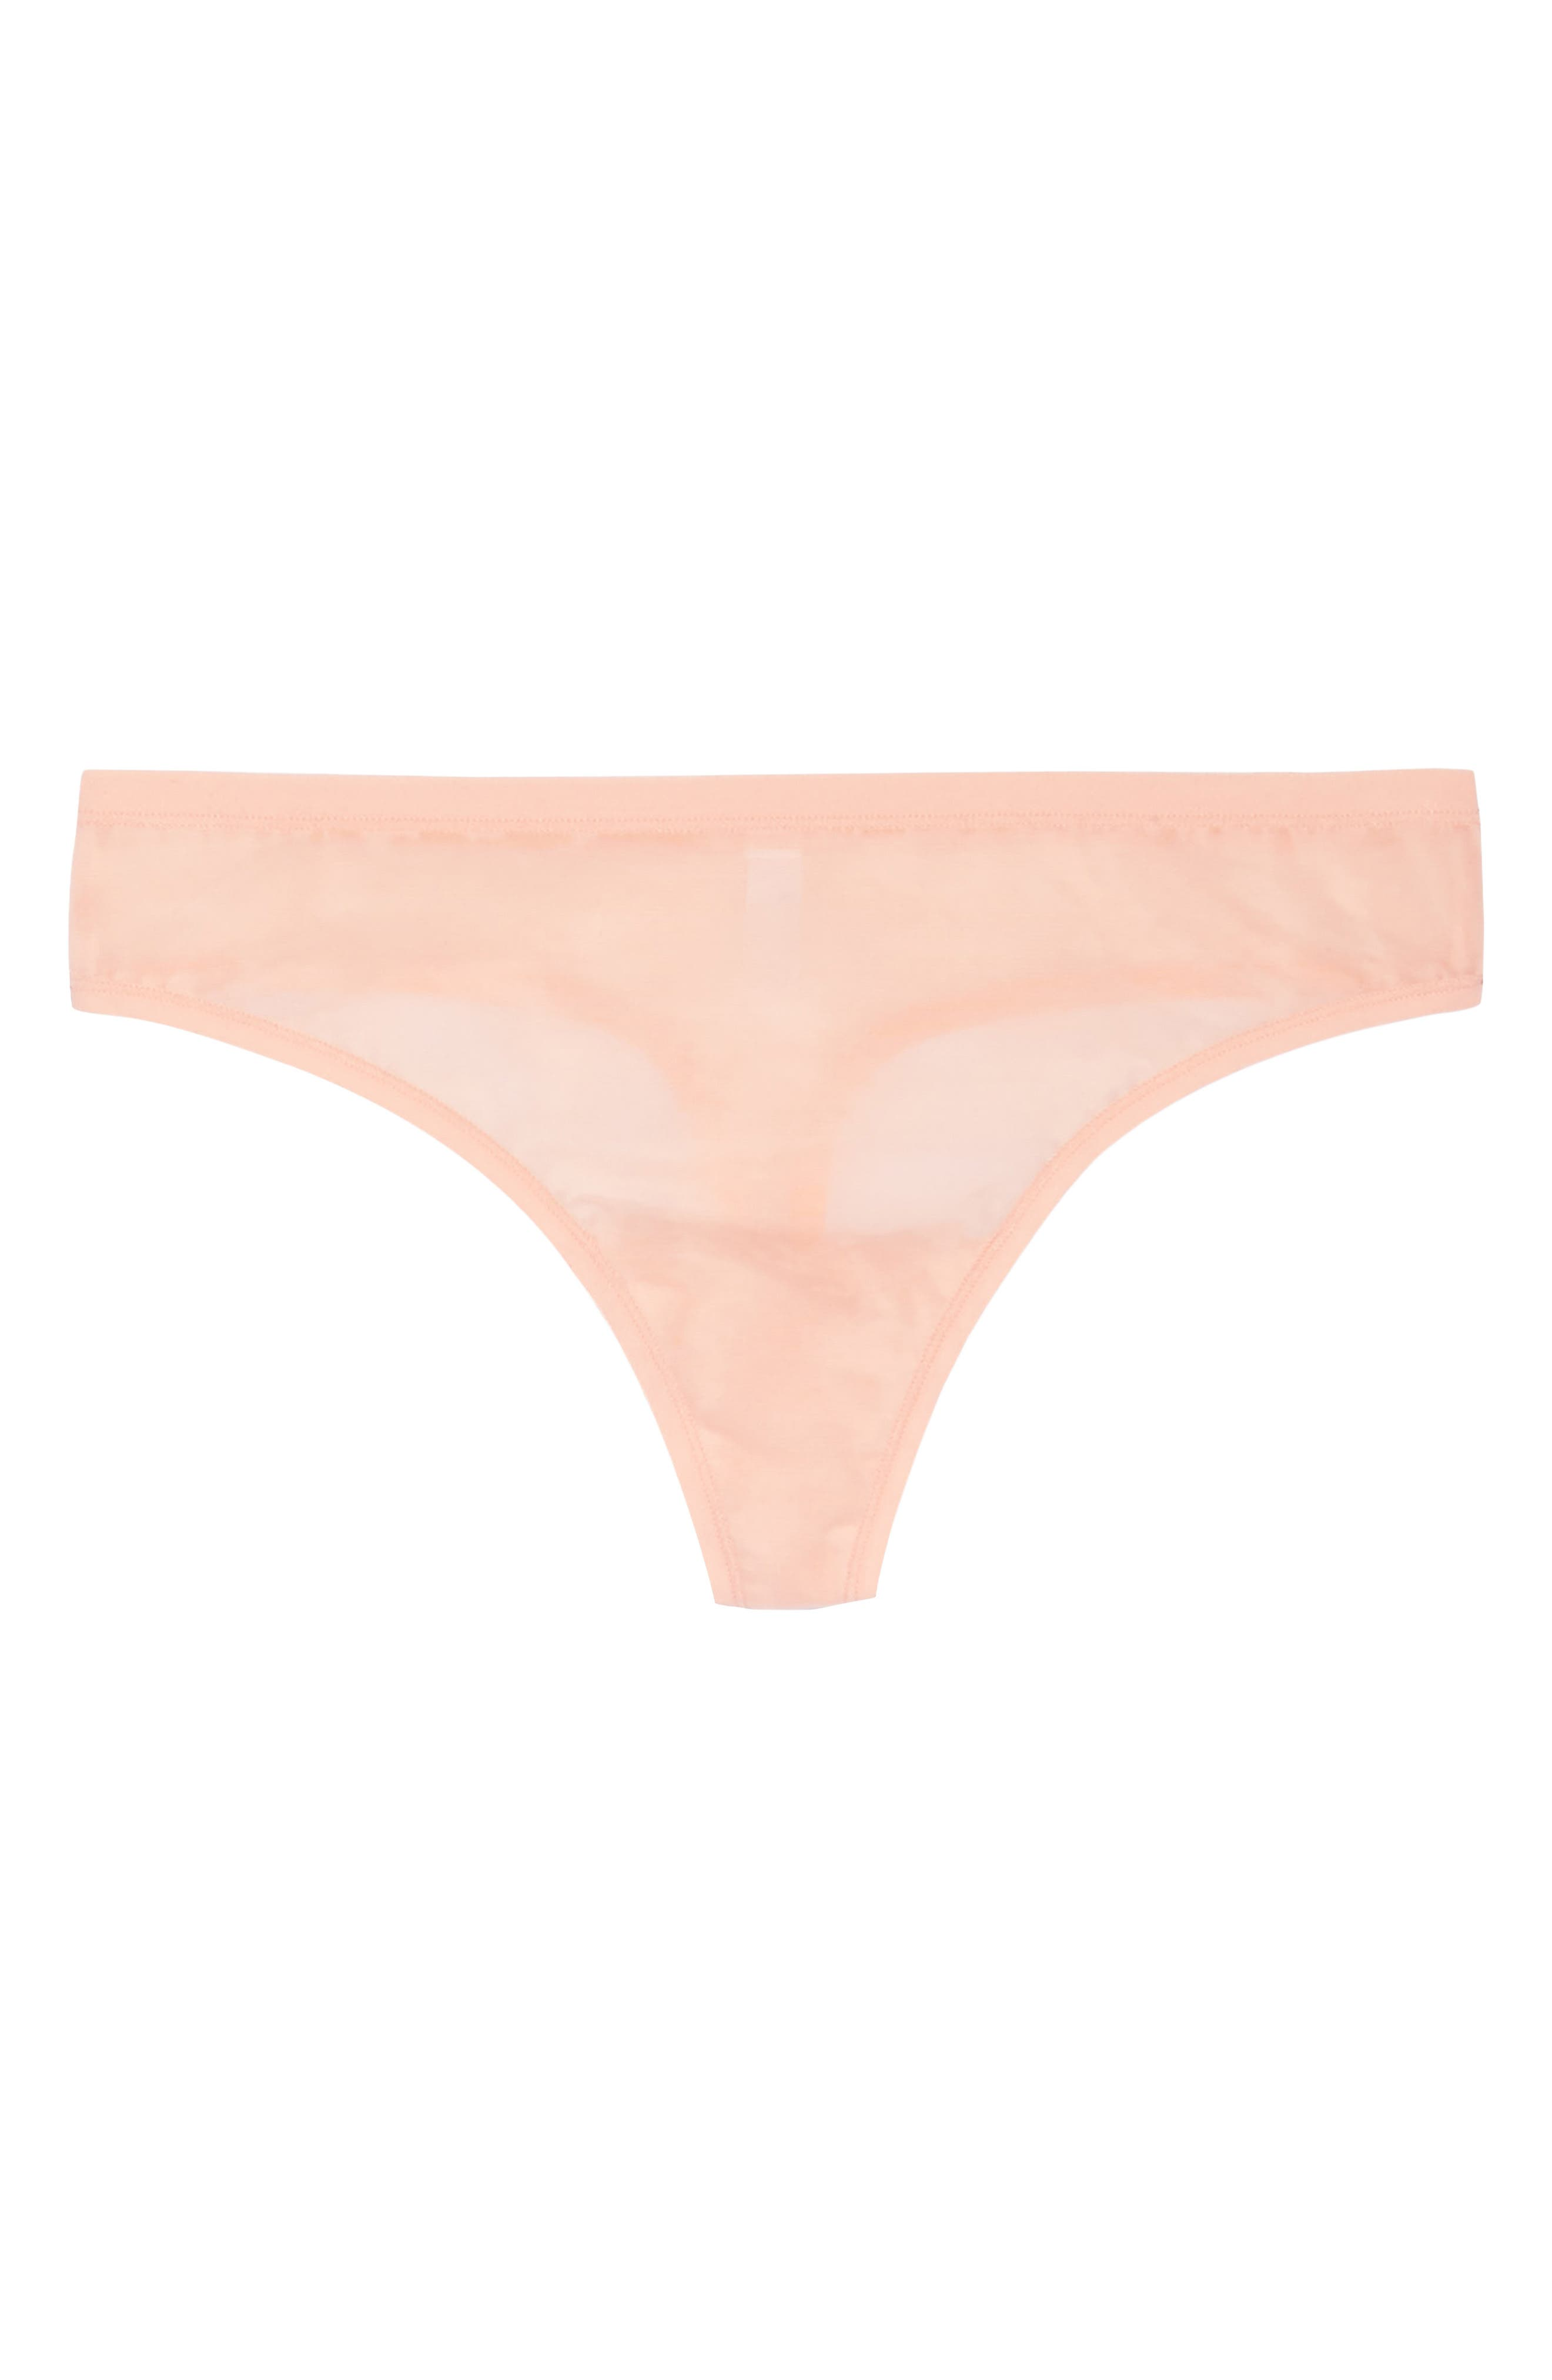 Bliss Light Thong,                             Alternate thumbnail 4, color,                             Creamsicle